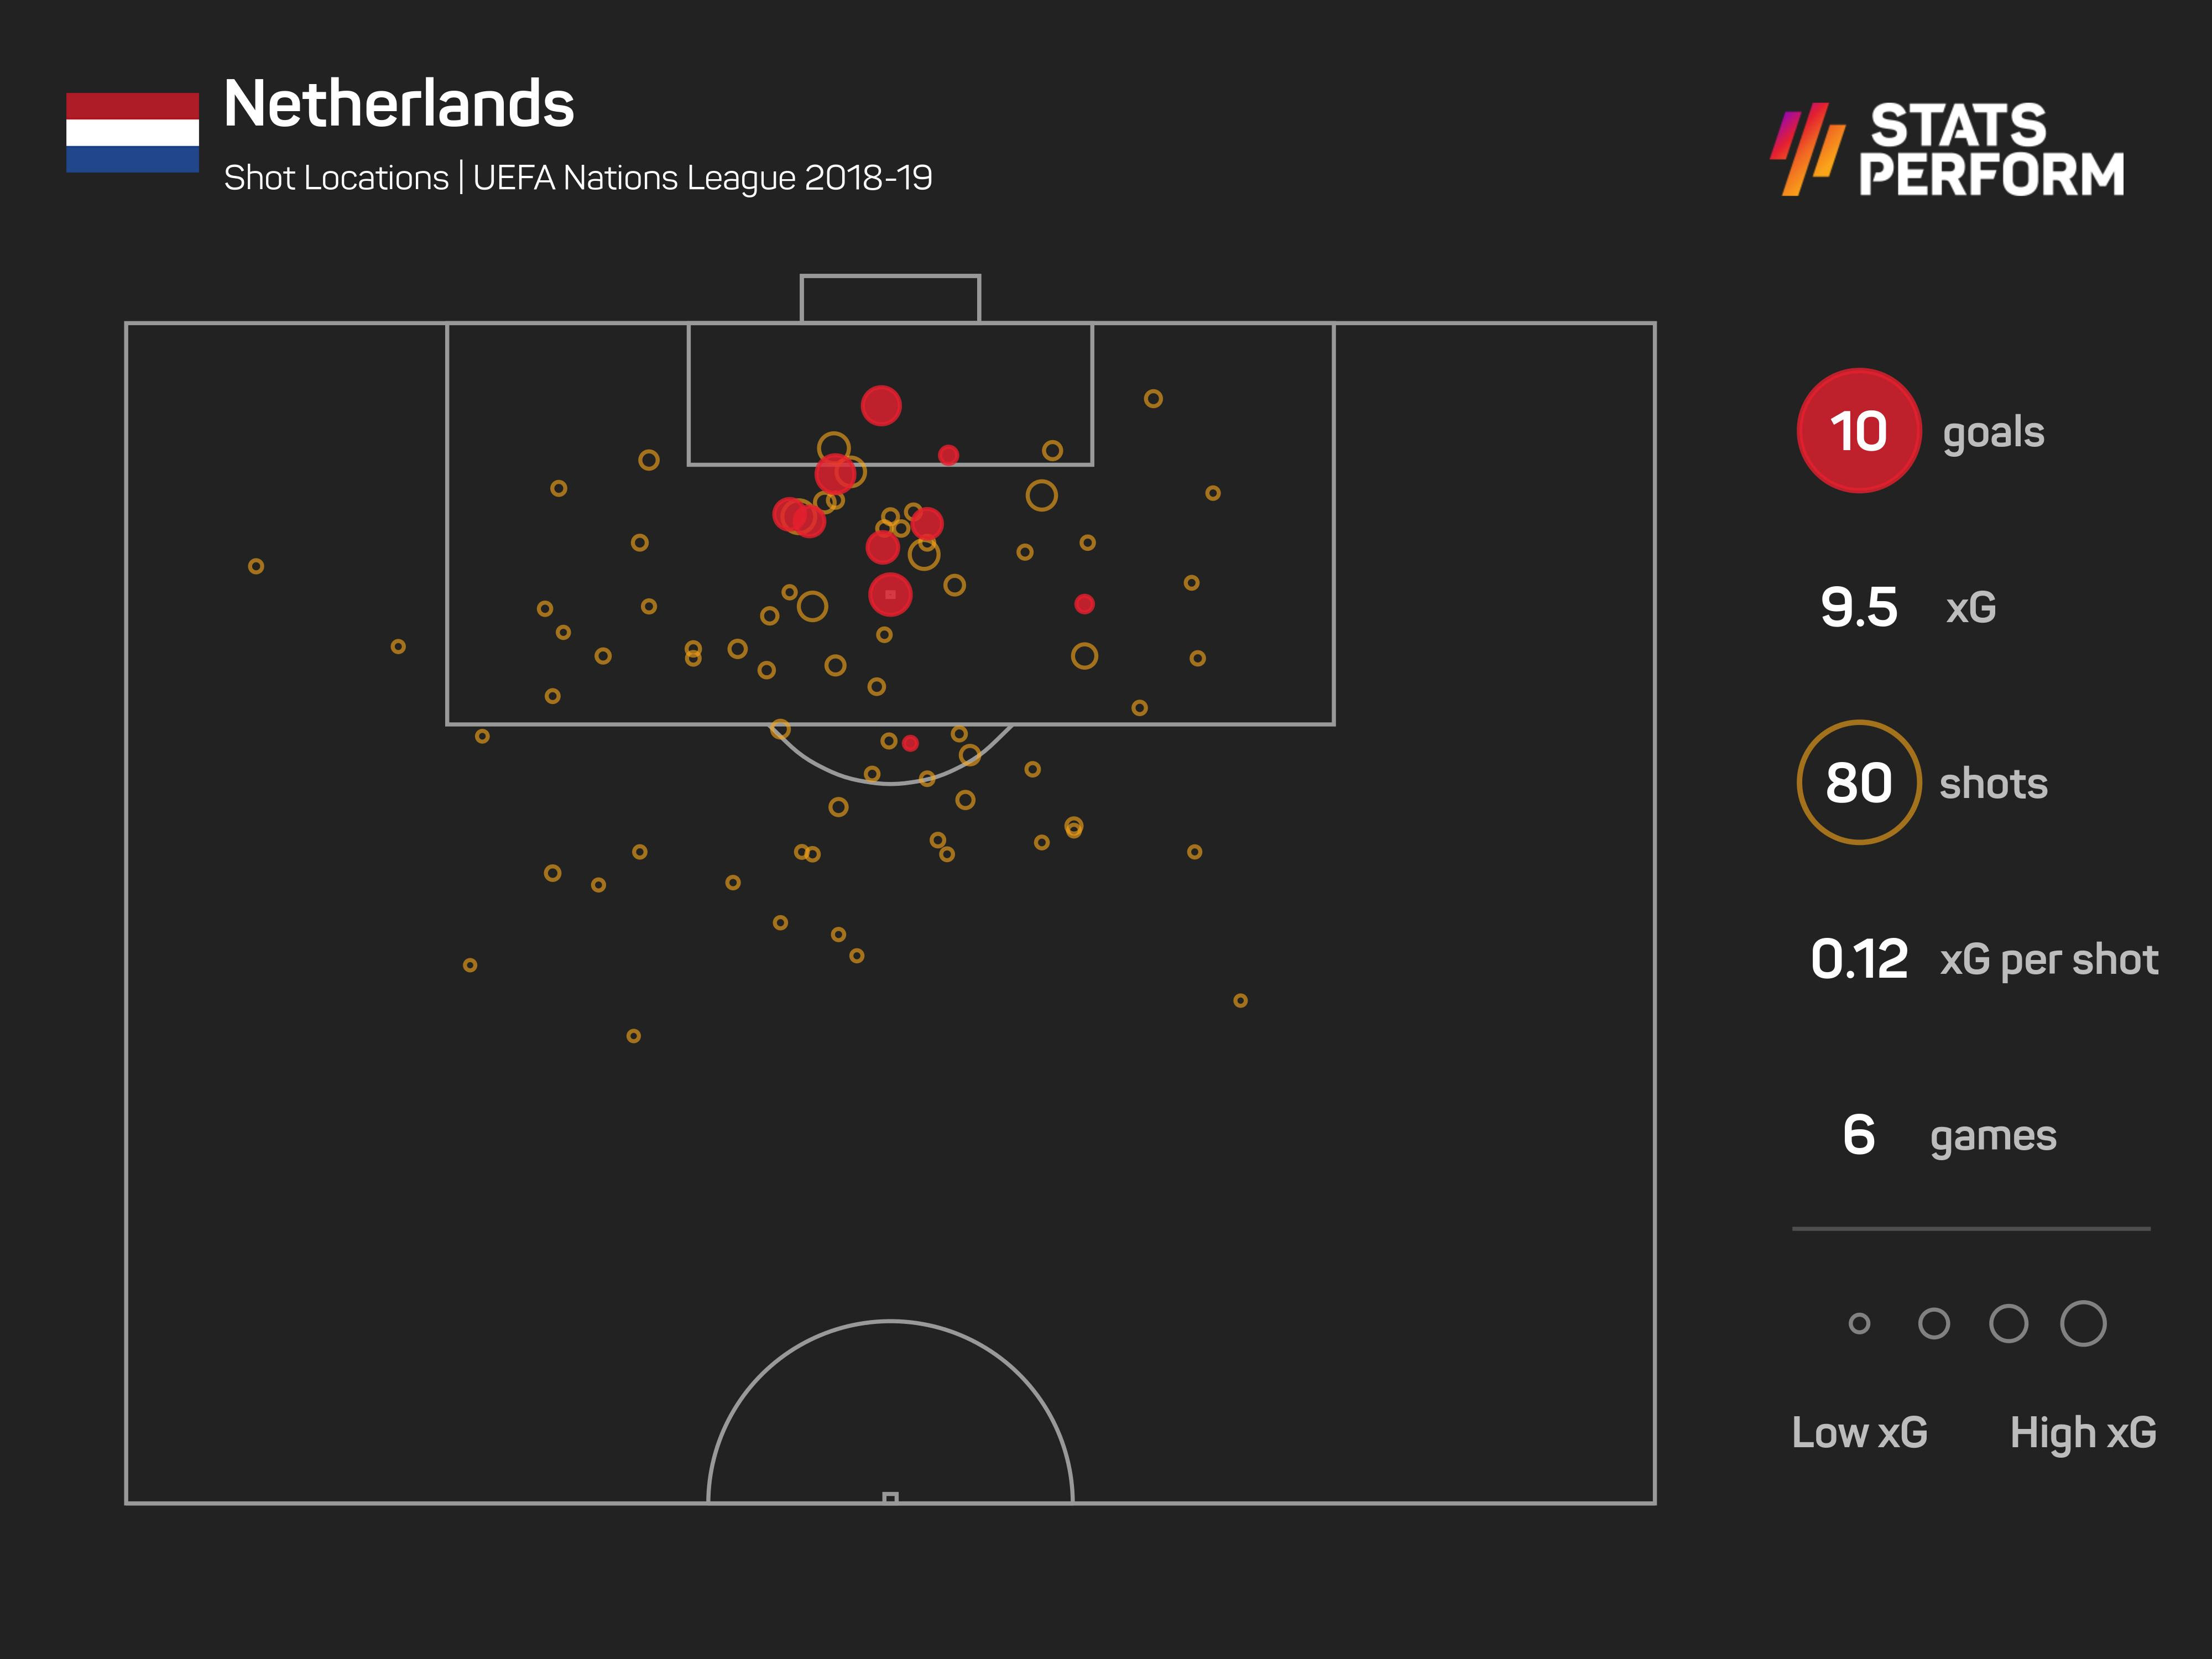 Ronald Koeman's Netherlands during the 2018-19 Nations League